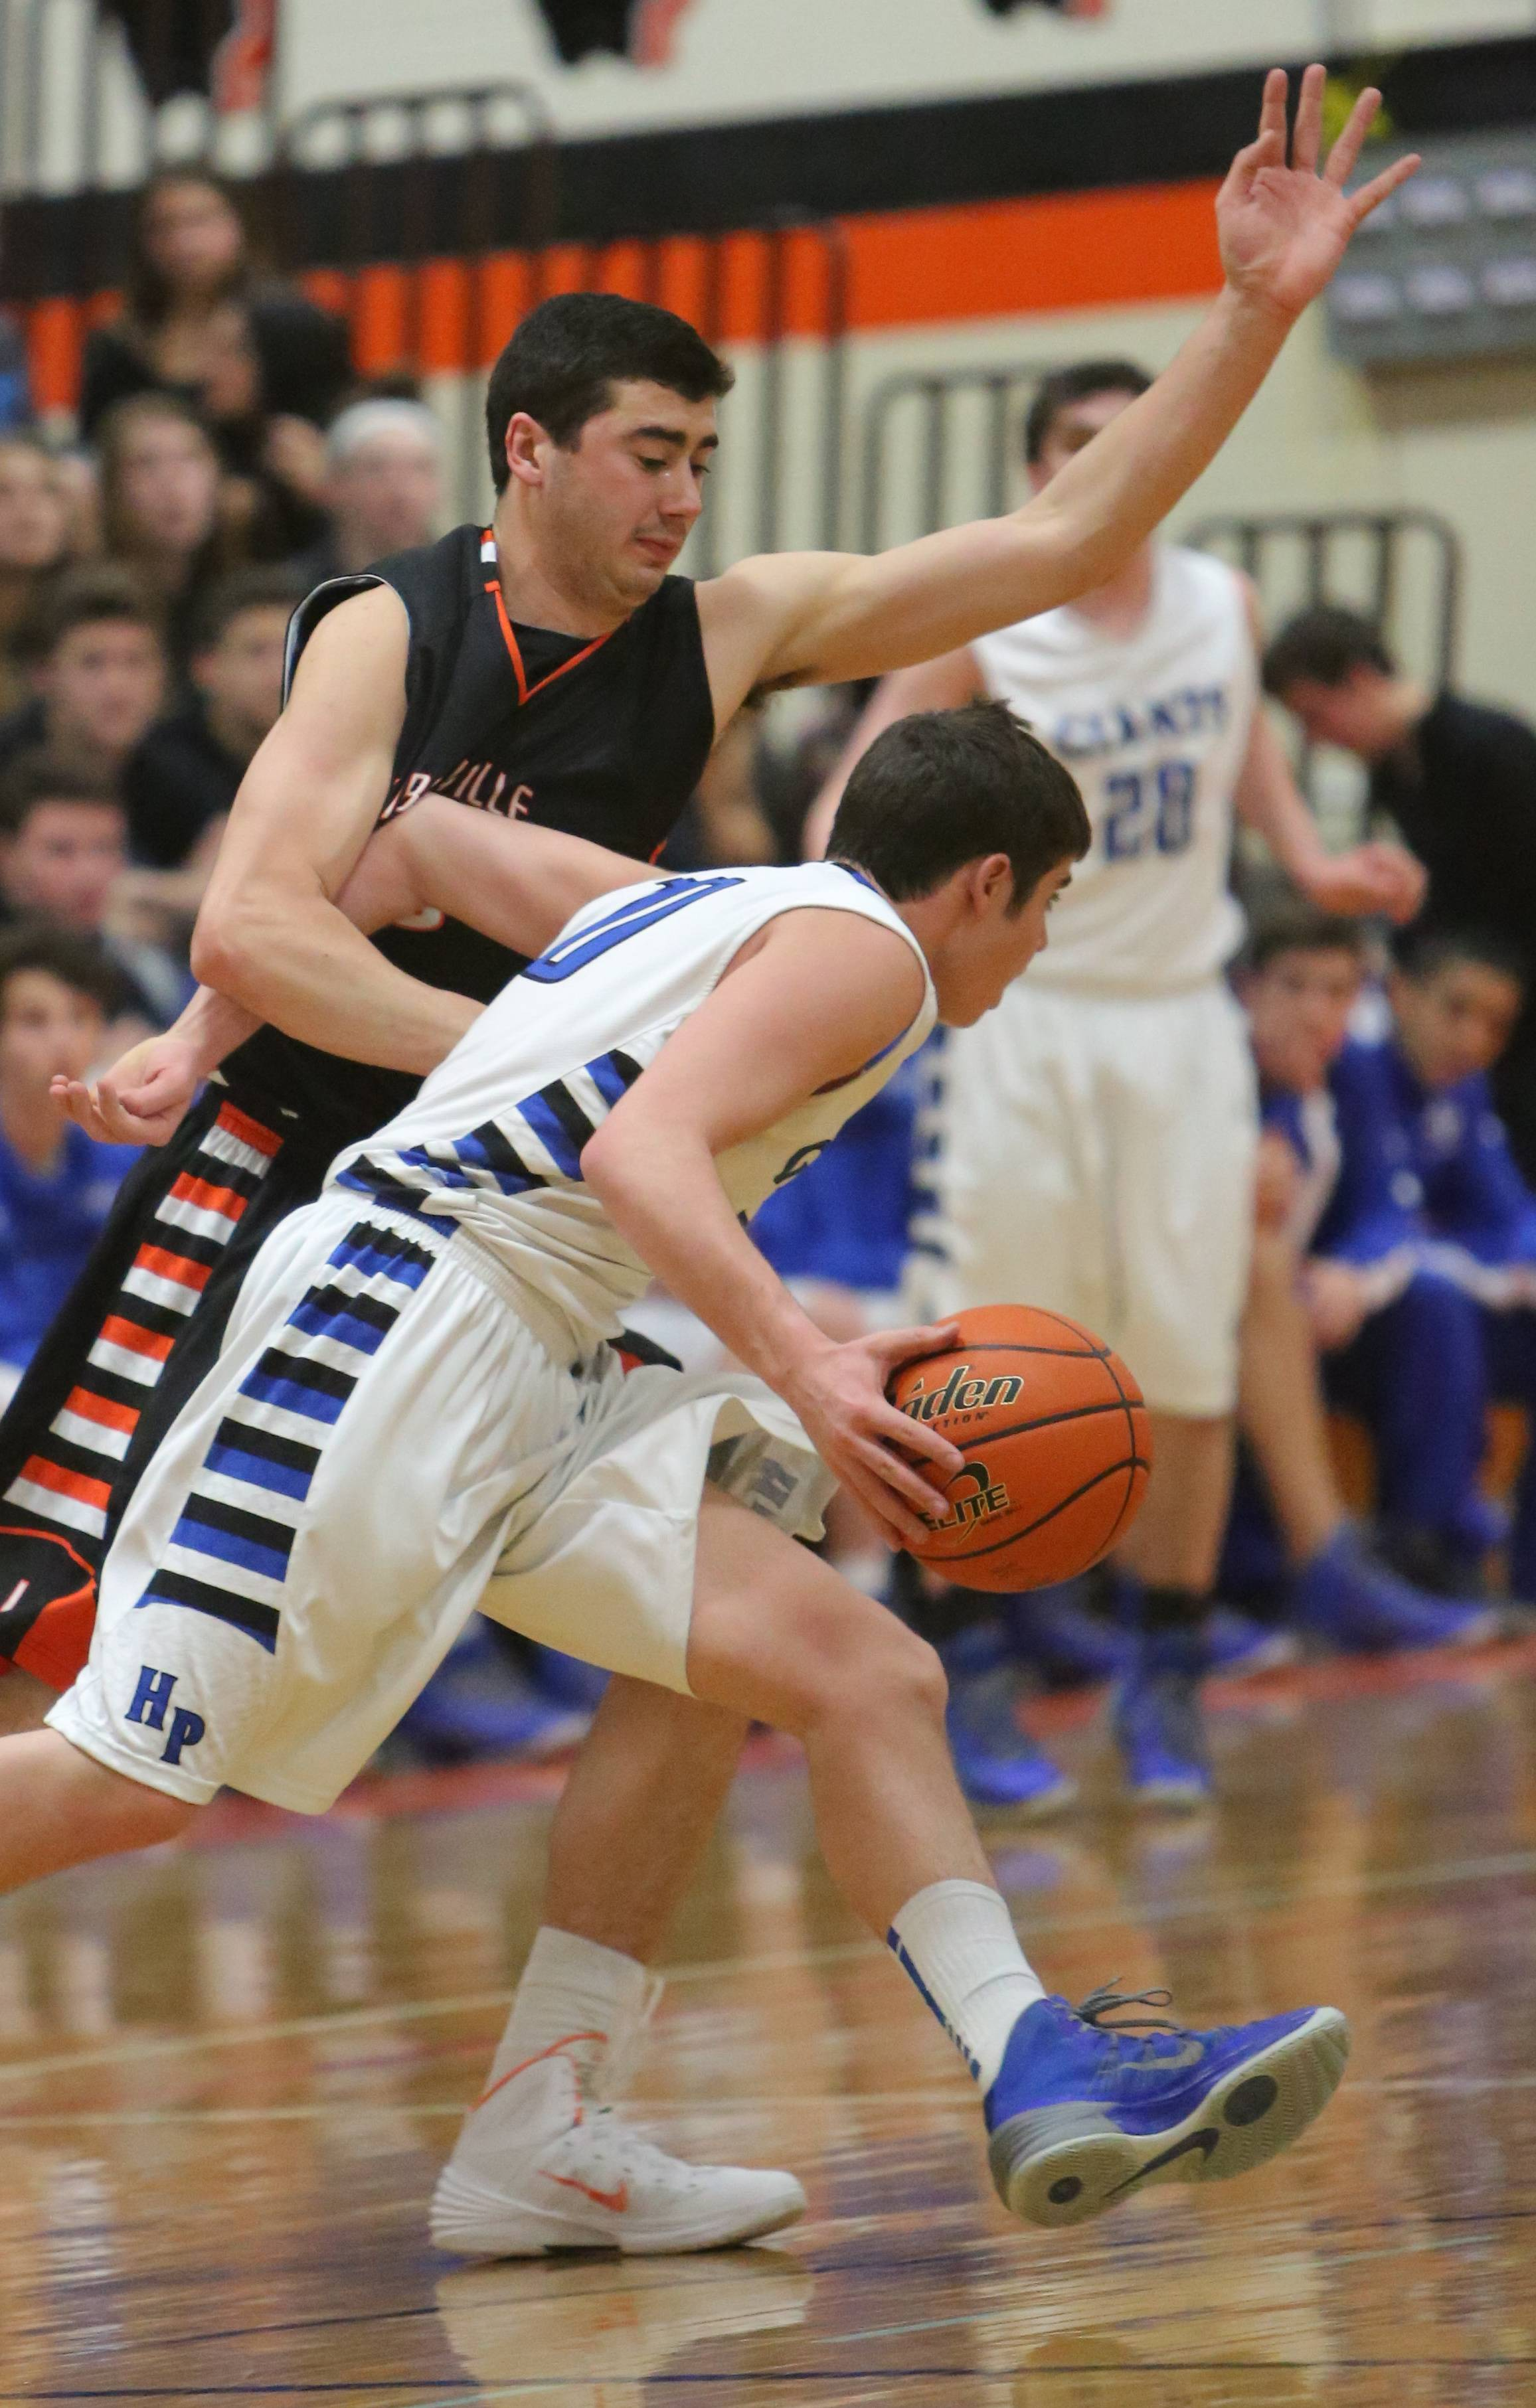 Images from the Libertyville vs. Highland Park boys basketball game on Tuesday, March 4 in Libertyville.